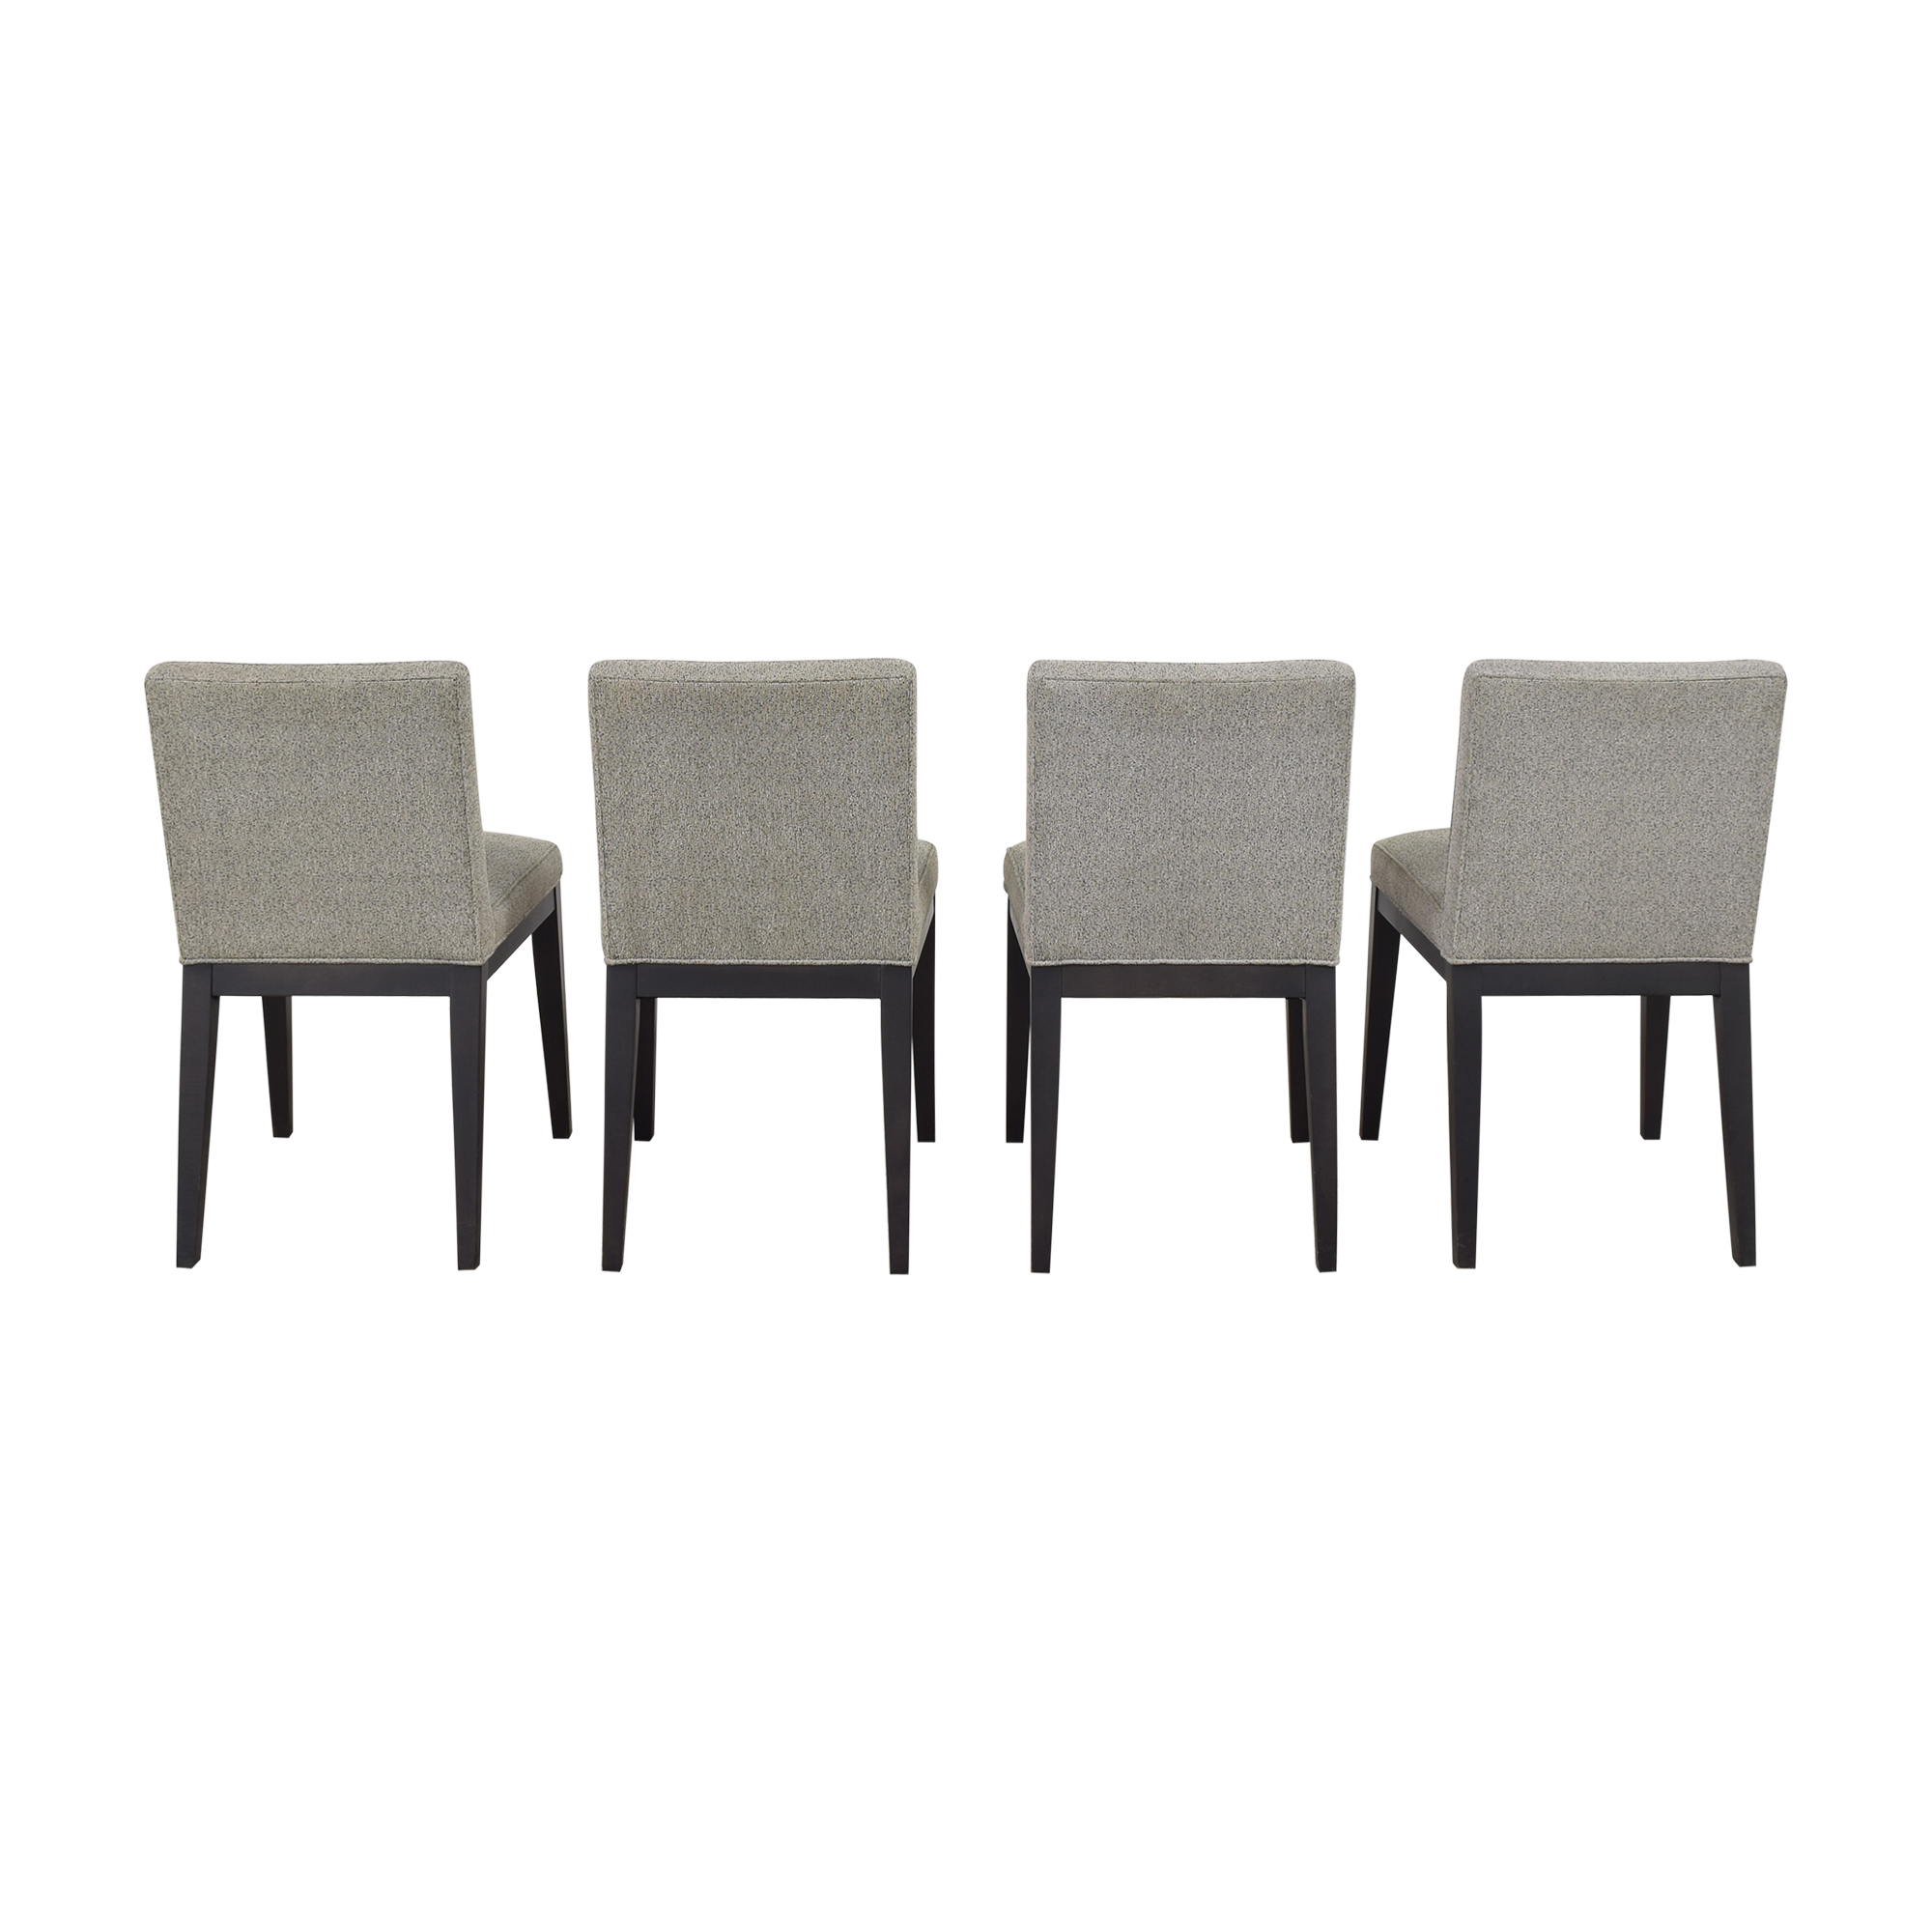 Room & Board Ansel Dining Side Chairs sale